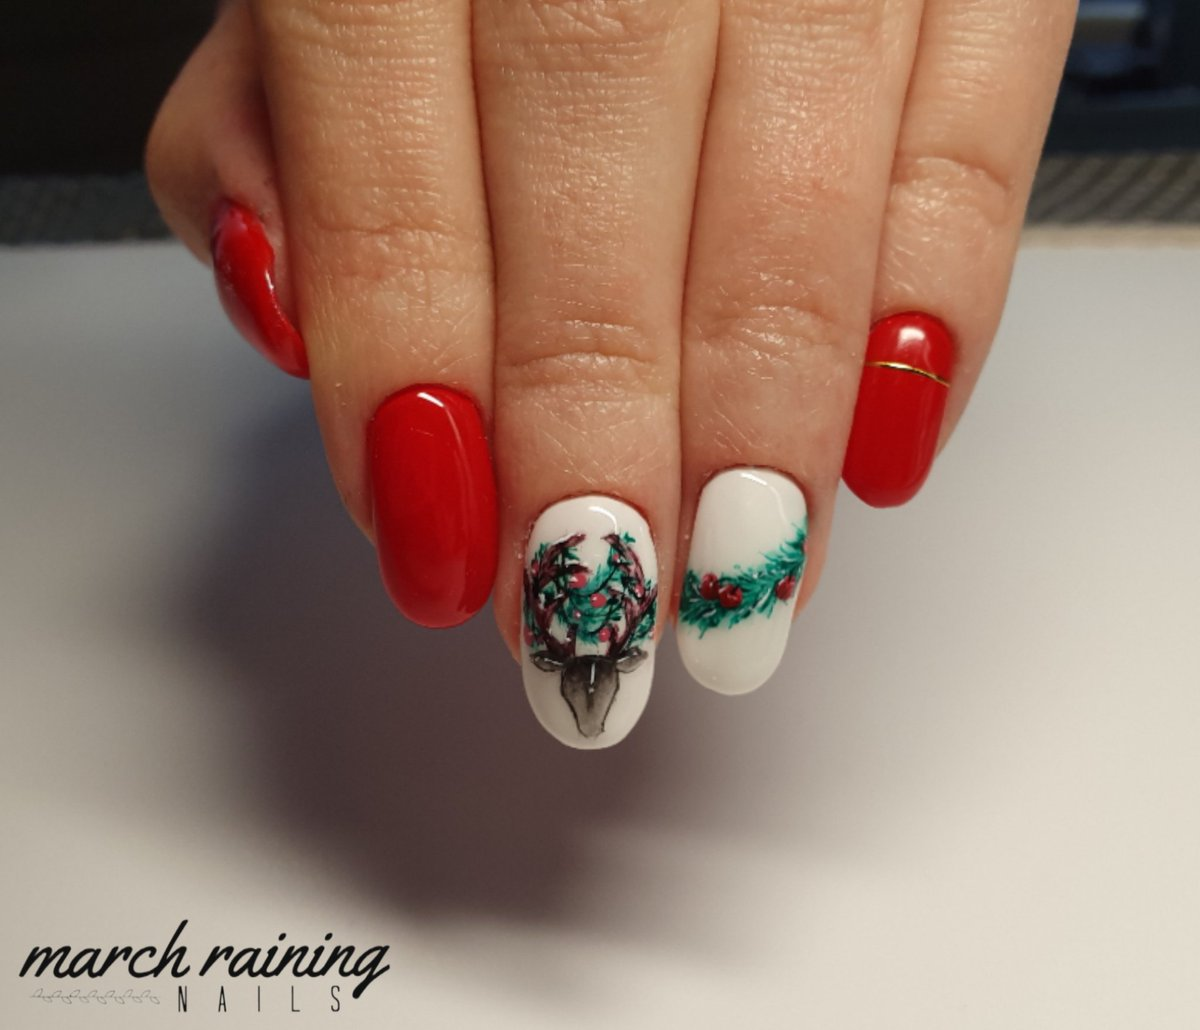 #nail #nails #nailart #christmasnails pic.twitter.com/iIrjPDQrxx